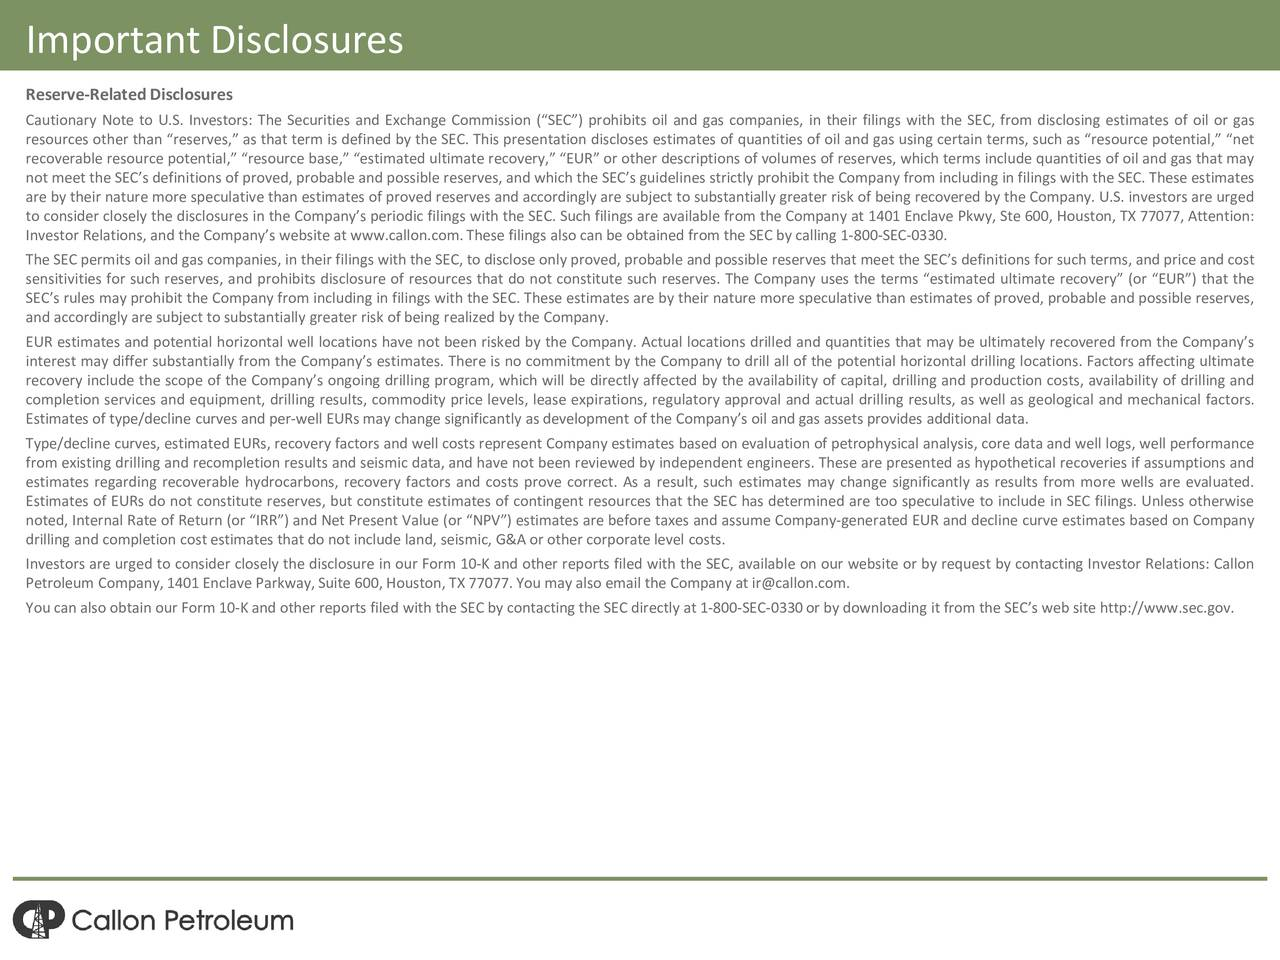 Reserve-Related Disclosures Cautionary Note to U.S. Investors: The Securities and Exchange Commission (SEC) prohibits oil and gas companies, in their filings with the SEC, from disclosing estimates of oil or gas resources other than reserves, as that term is defined by the SEC. This presentation discloses estimates of quantities of oil and gas using certain terms, such as resource potential, net recoverable resource potential, resource base, estimated ultimate recovery, EUR or other descriptions of volumes of reserves, which terms include quantities of oil and gas that may not meet the SECs definitions of proved, probable and possible reserves, and which the SECs guidelines strictly prohibit the Company from including in filings with the SEC. These estimates are by their nature more speculative than estimates of proved reserves and accordingly are subject to substantially greater risk of being recovered by the Company. U.S. investors are urged to consider closely the disclosures in the Companys periodic filings with the SEC. Such filings are available from the Company at 1401 Enclave Pkwy, Ste 600, Houston, TX 77077, Attention: Investor Relations, and the Companys website at www.callon.com.These filings also can be obtained from the SEC by calling 1-800-SEC-0330. The SEC permits oil and gas companies, in their filings with the SEC, to disclose only proved, probable and possible reserves that meet the SECs definitions for such terms, and price and cost sensitivities for such reserves, and prohibits disclosure of resources that do not constitute such reserves. The Company uses the terms estimated ultimate recovery (or EUR) that the SECs rules may prohibit the Company from including in filings with the SEC. These estimates are by their nature more speculative than estimates of proved, probable and possible reserves, and accordingly are subject to substantially greater risk of being realized by the Company. EUR estimates and potential horizontal well locations have not 